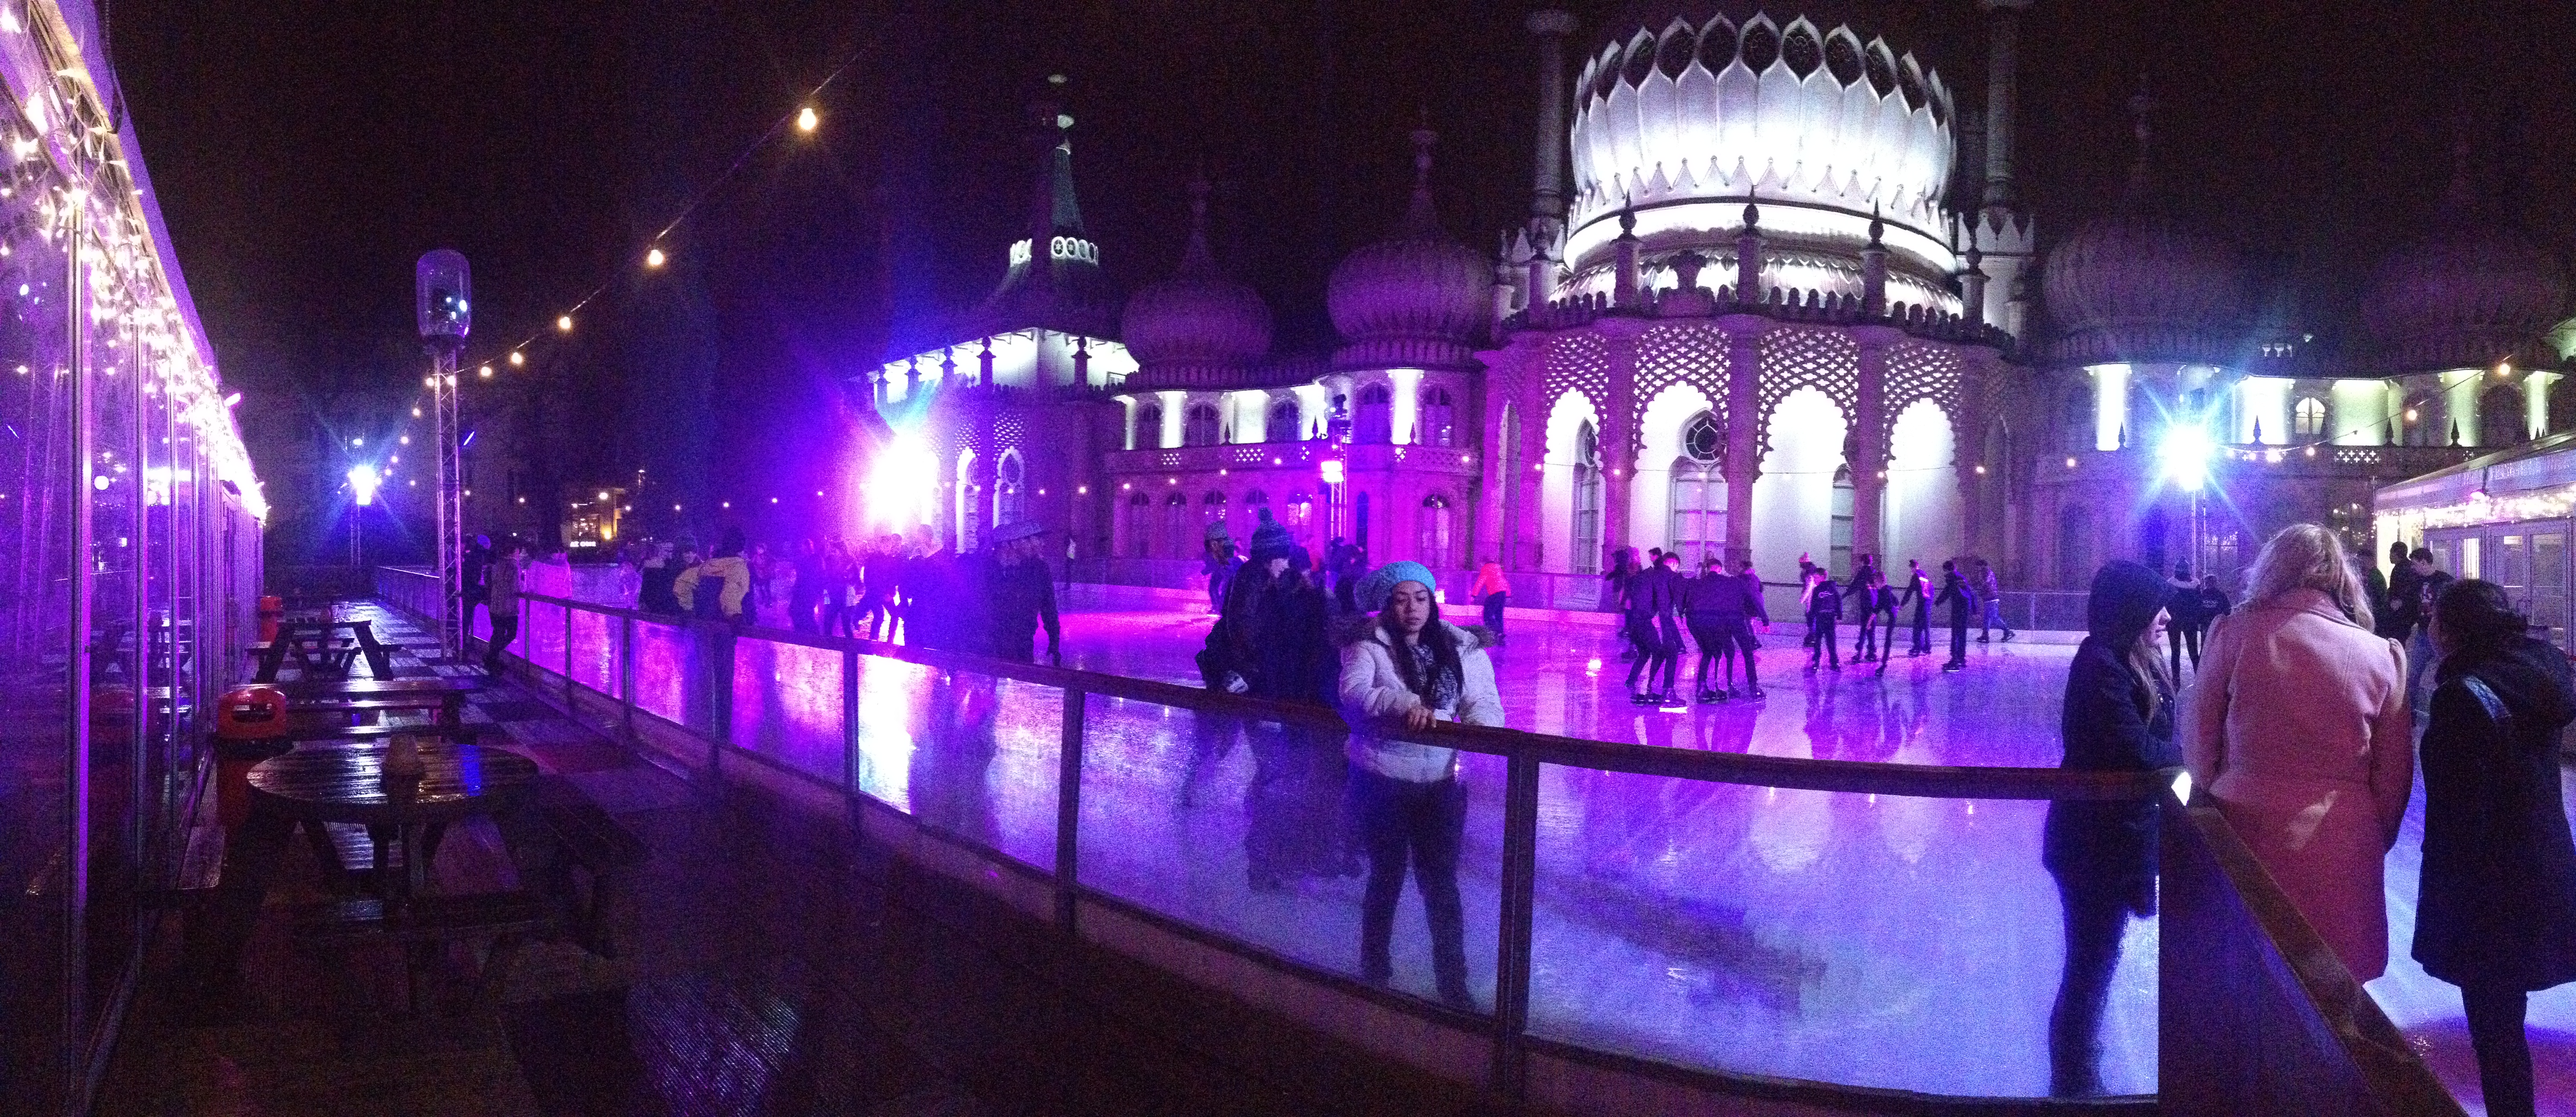 Brighton Pavillion Ice Skating rink